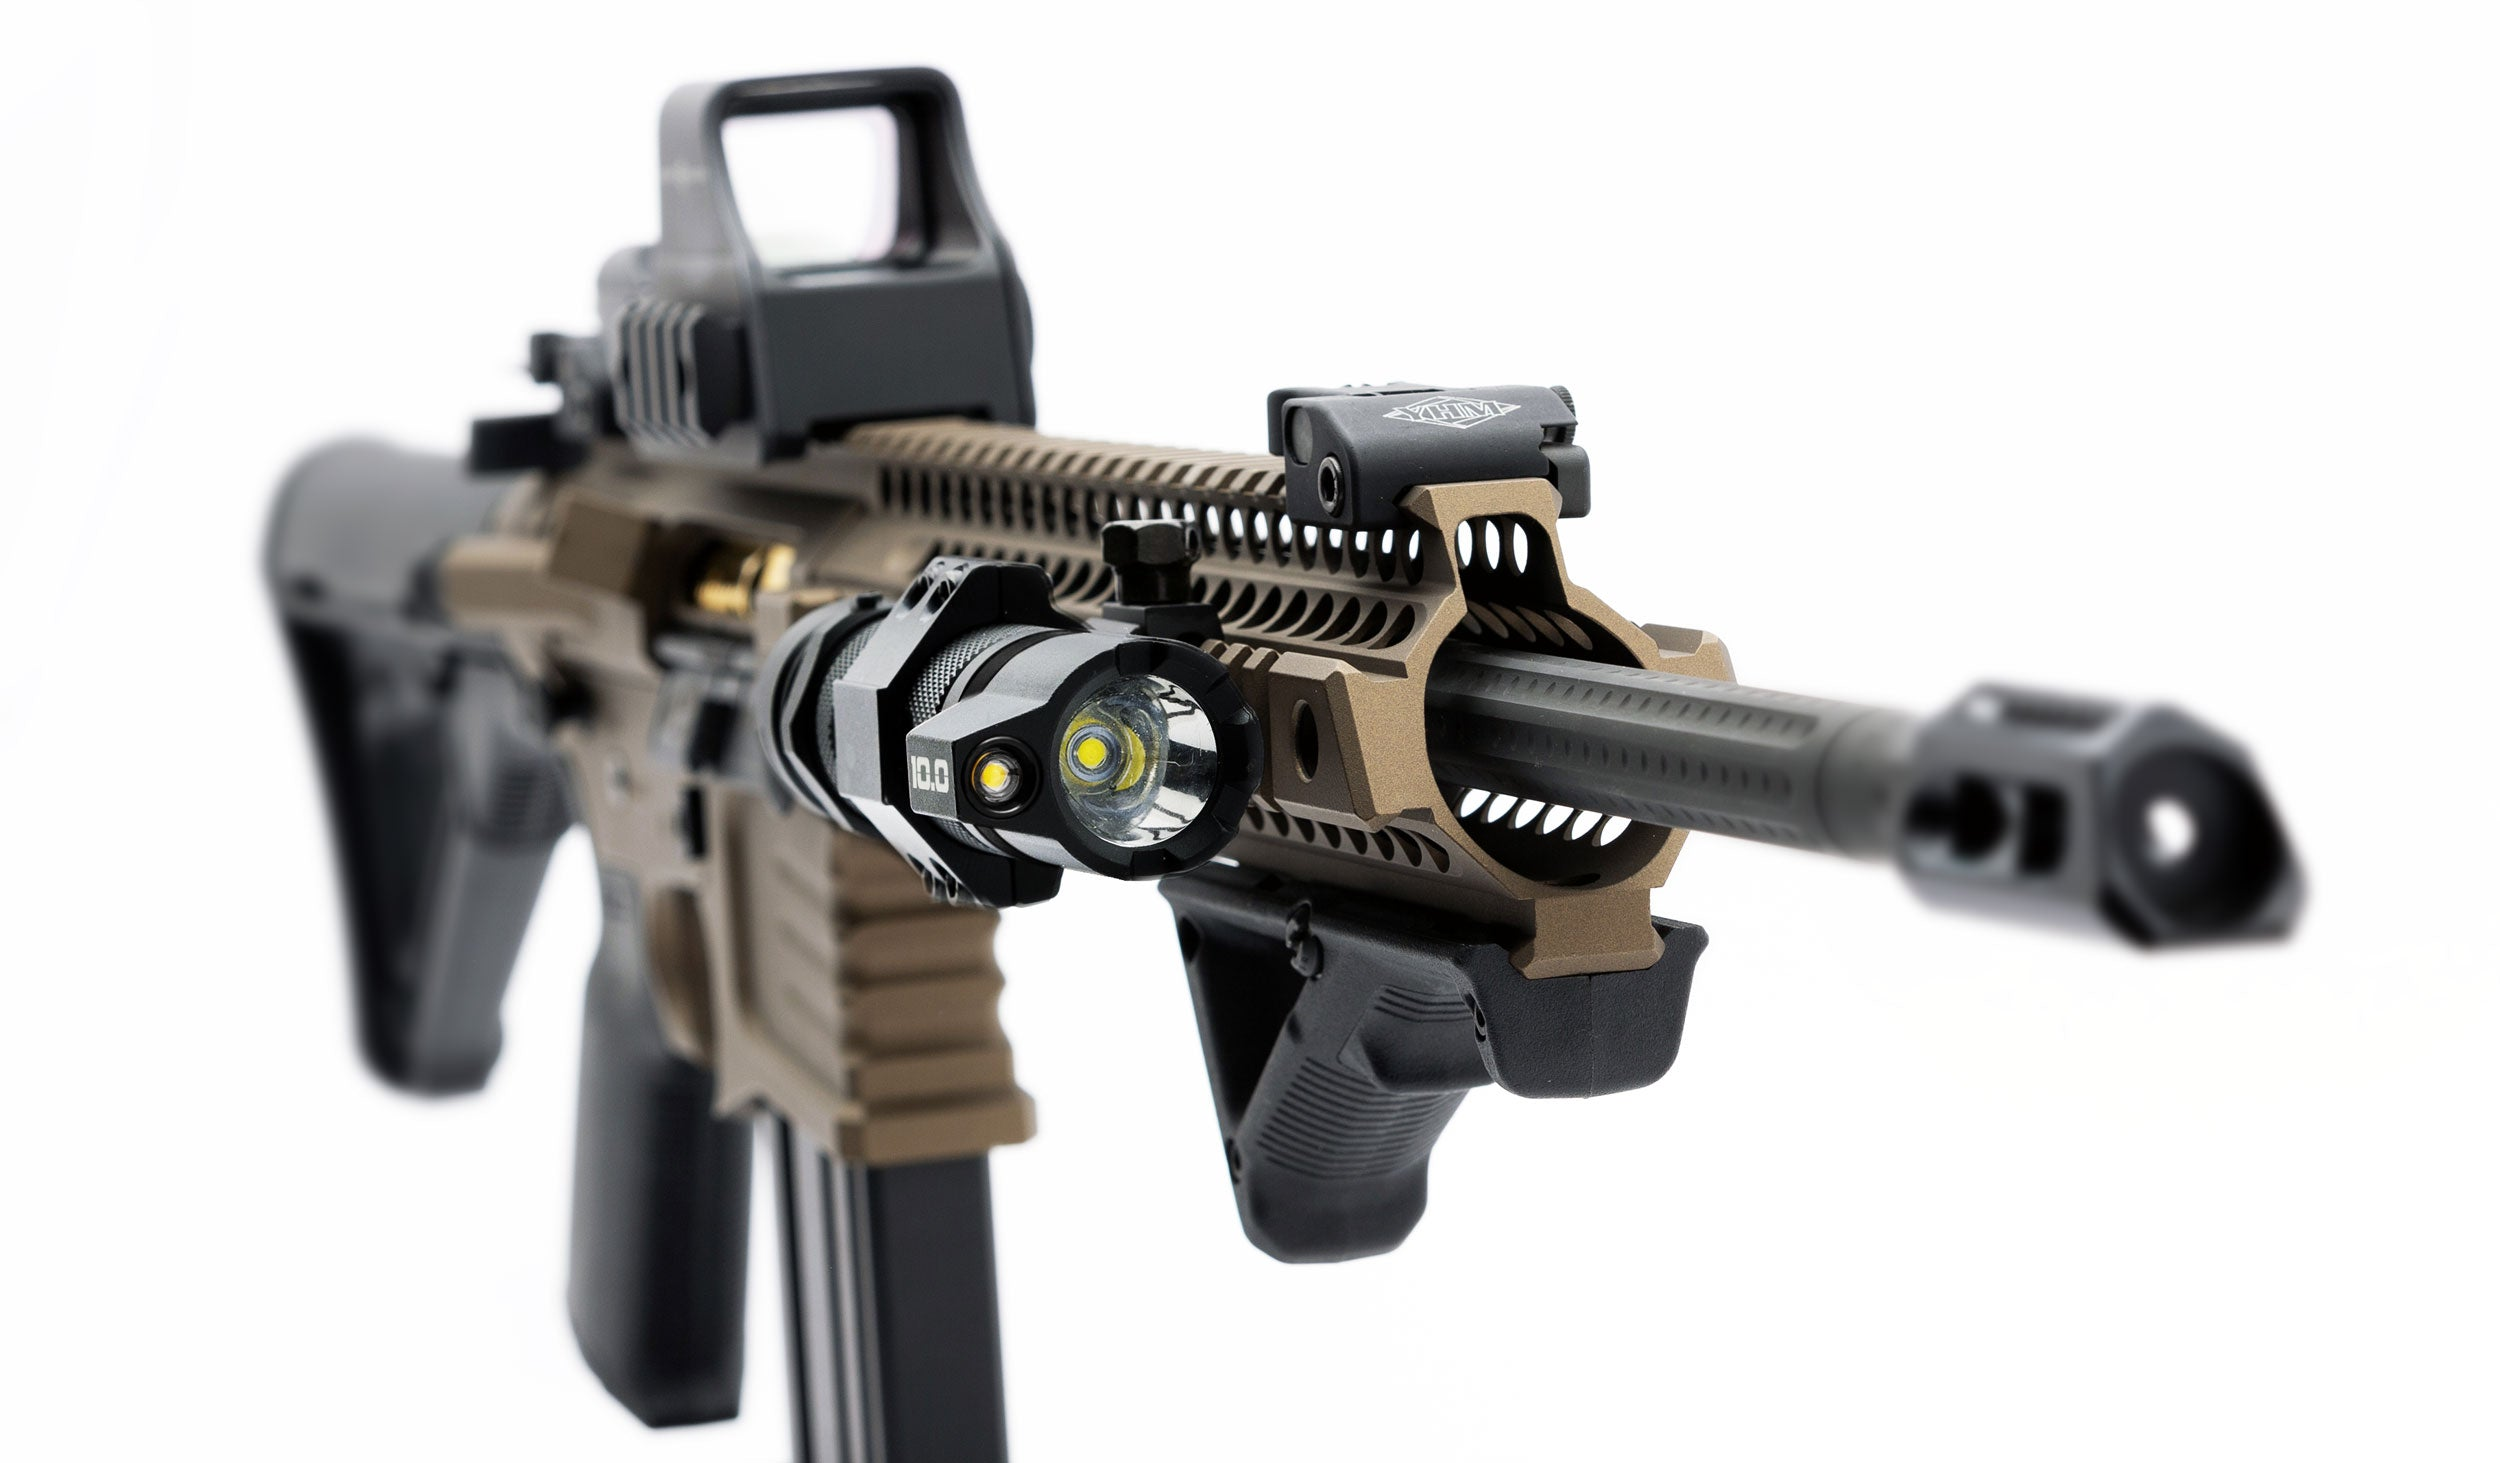 Striker Concepts B.A.M.F.F. 10.0 Dual LED Flashlight mounted on gun | STKR Concepts